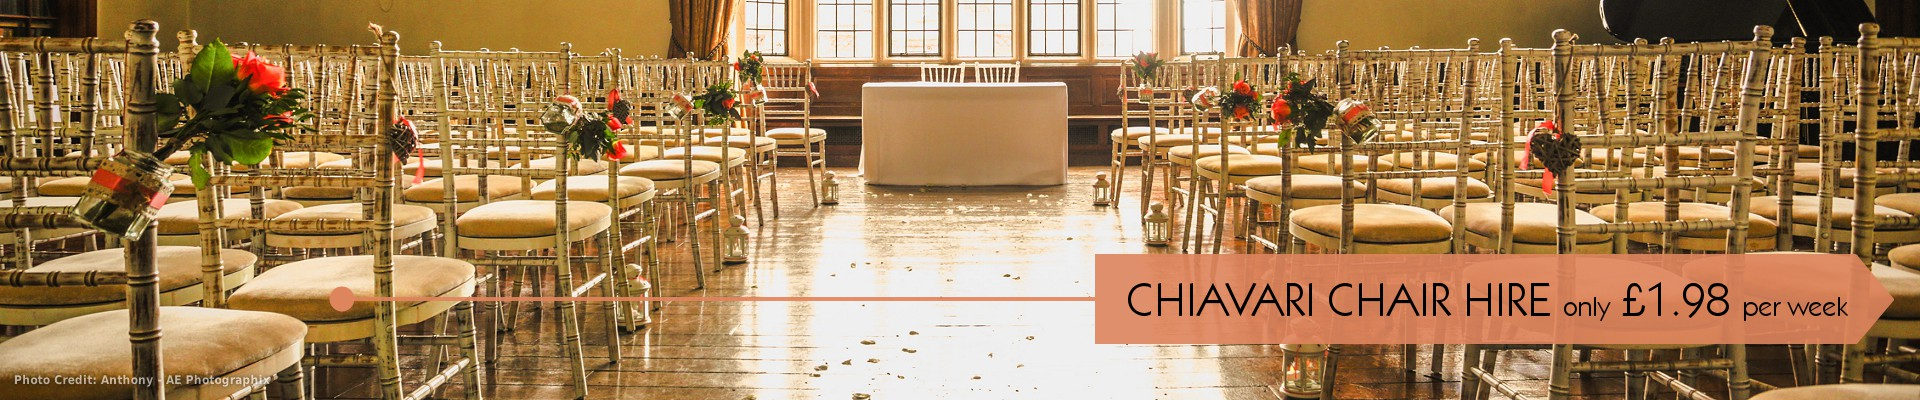 chiavari-chair-hire